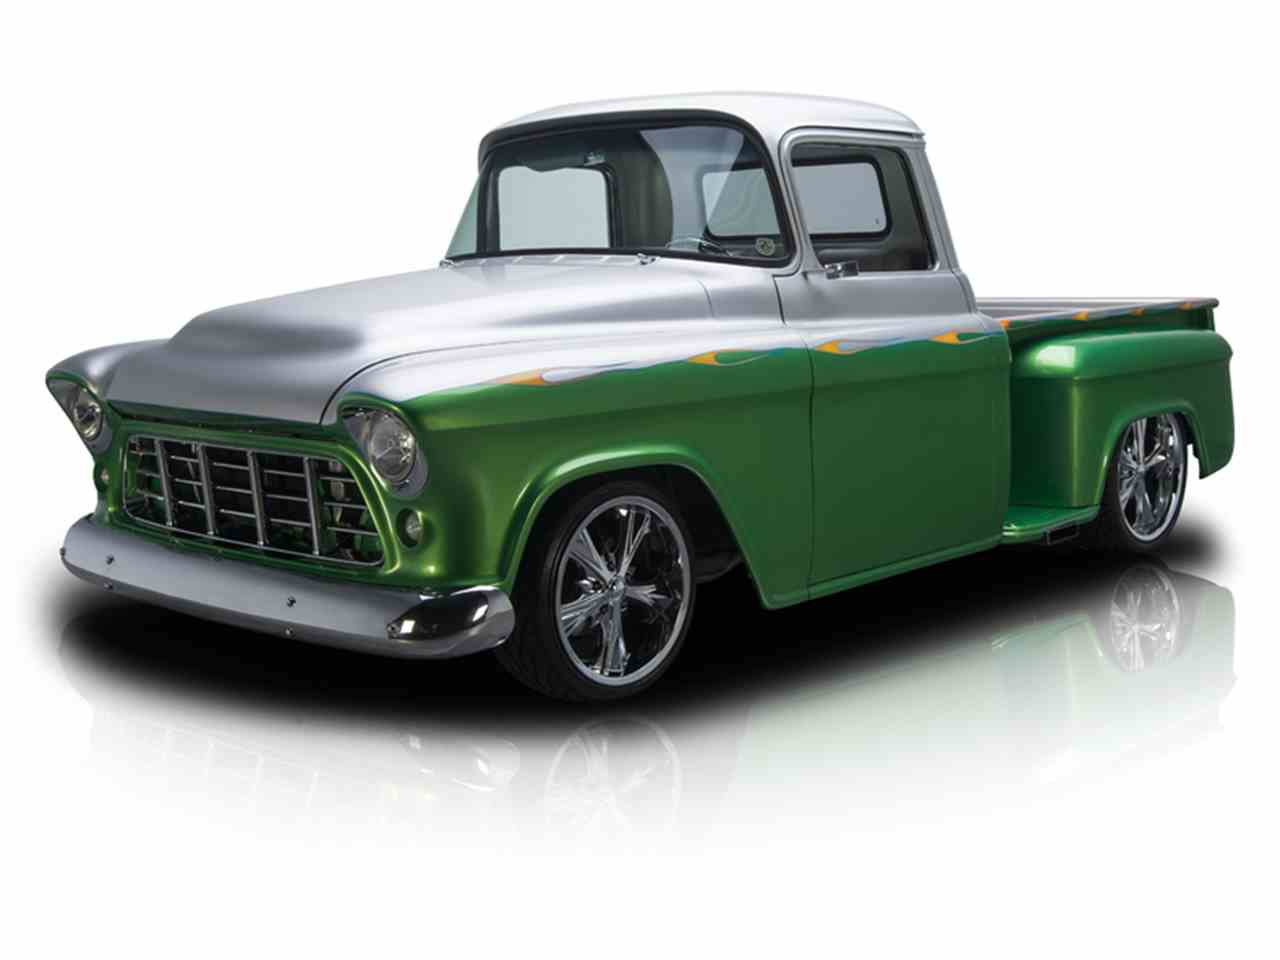 Truck 56 chevy truck : 1956 Chevrolet 3100 for Sale on ClassicCars.com